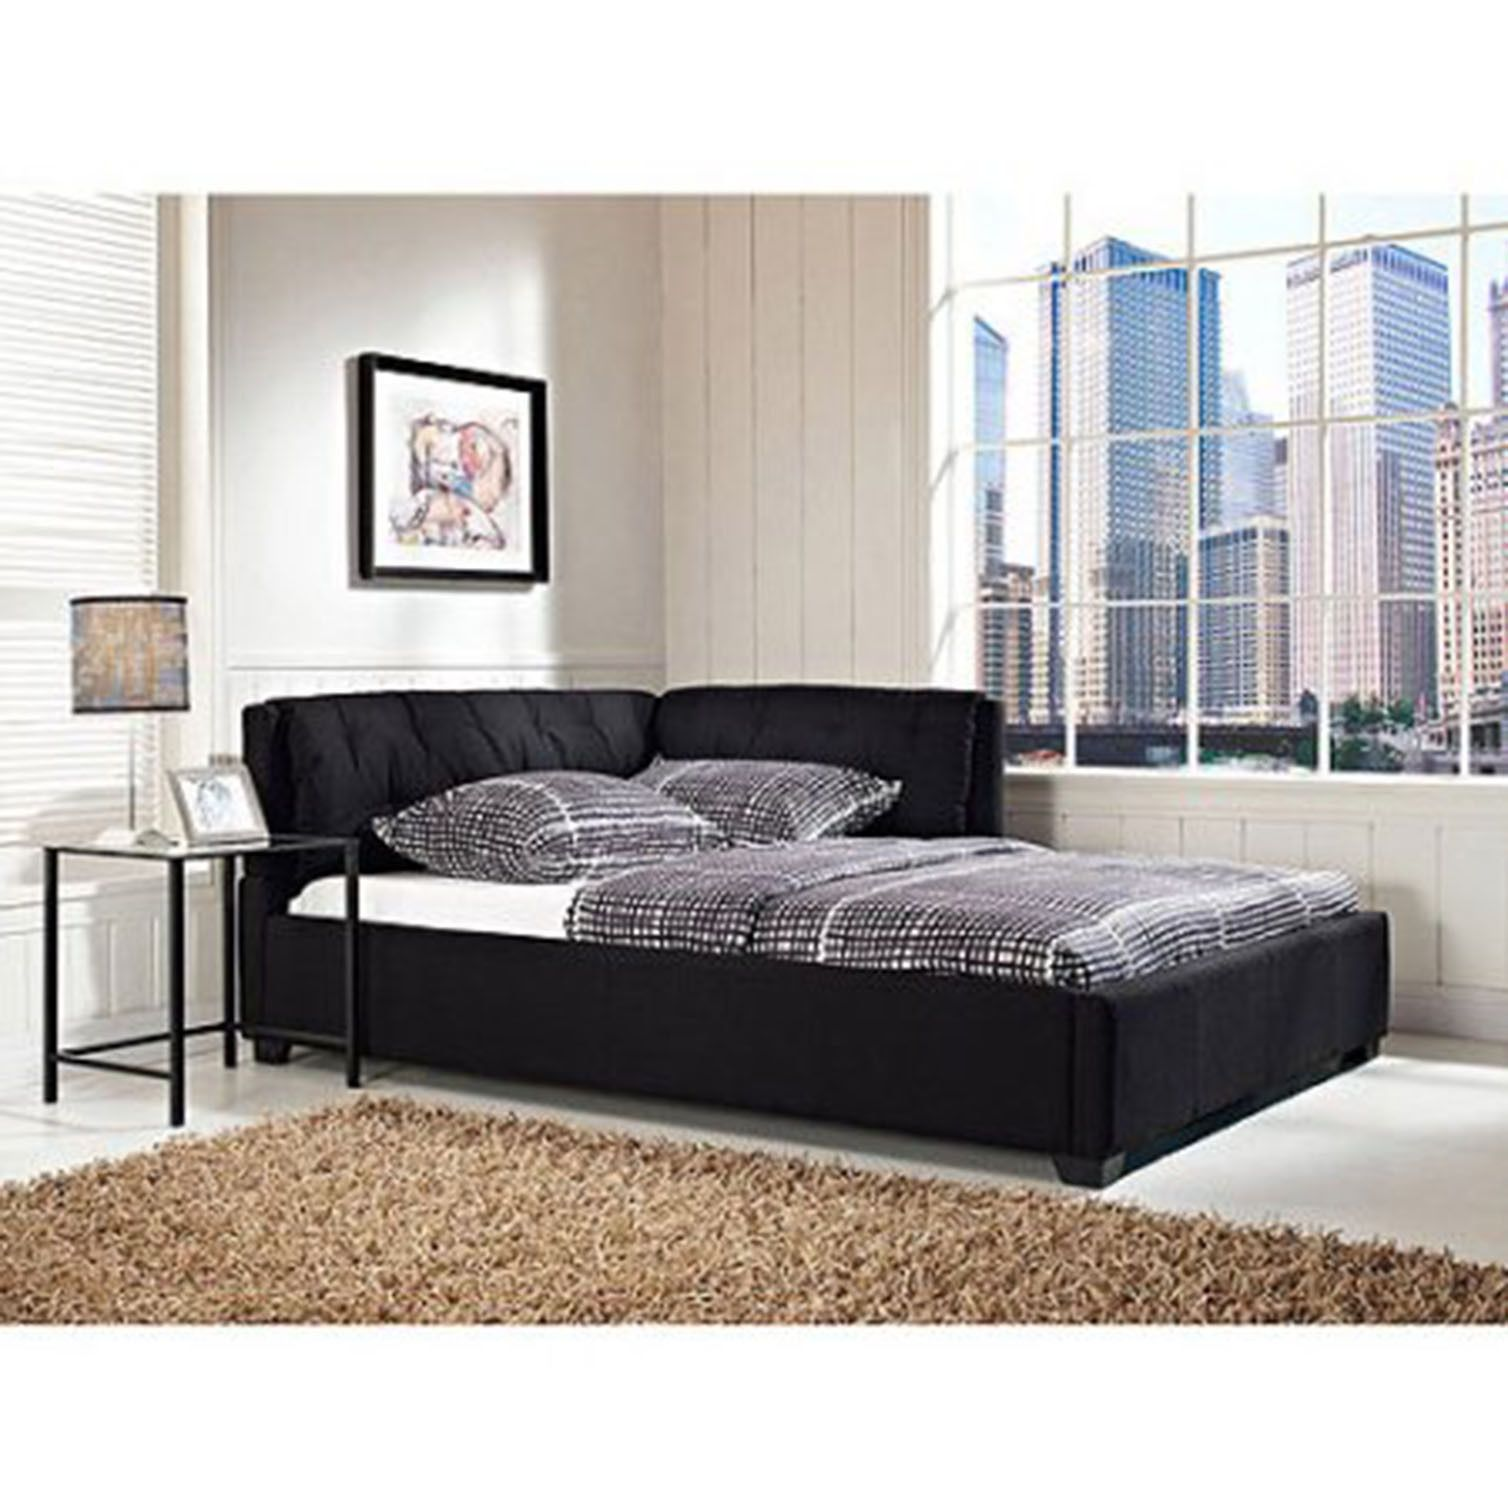 Cute Full Size Daybed Design For Your Bedroom Full Size